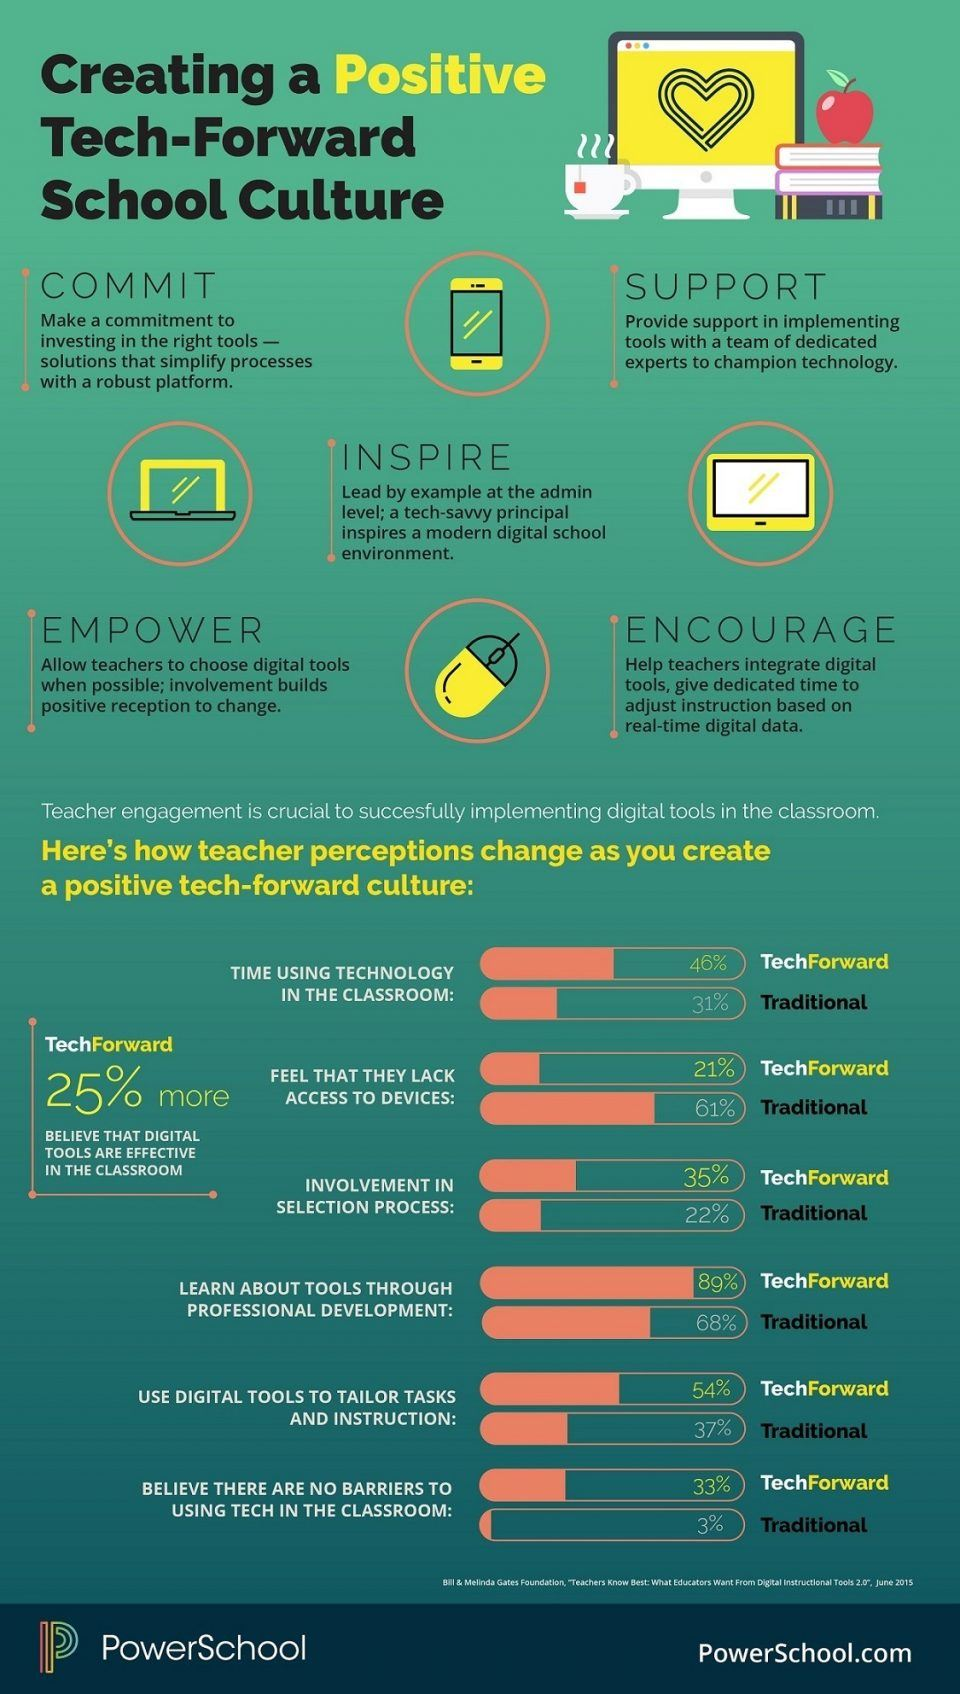 How Teacher Perceptions Differ in Tech-Forward Schools Infographic